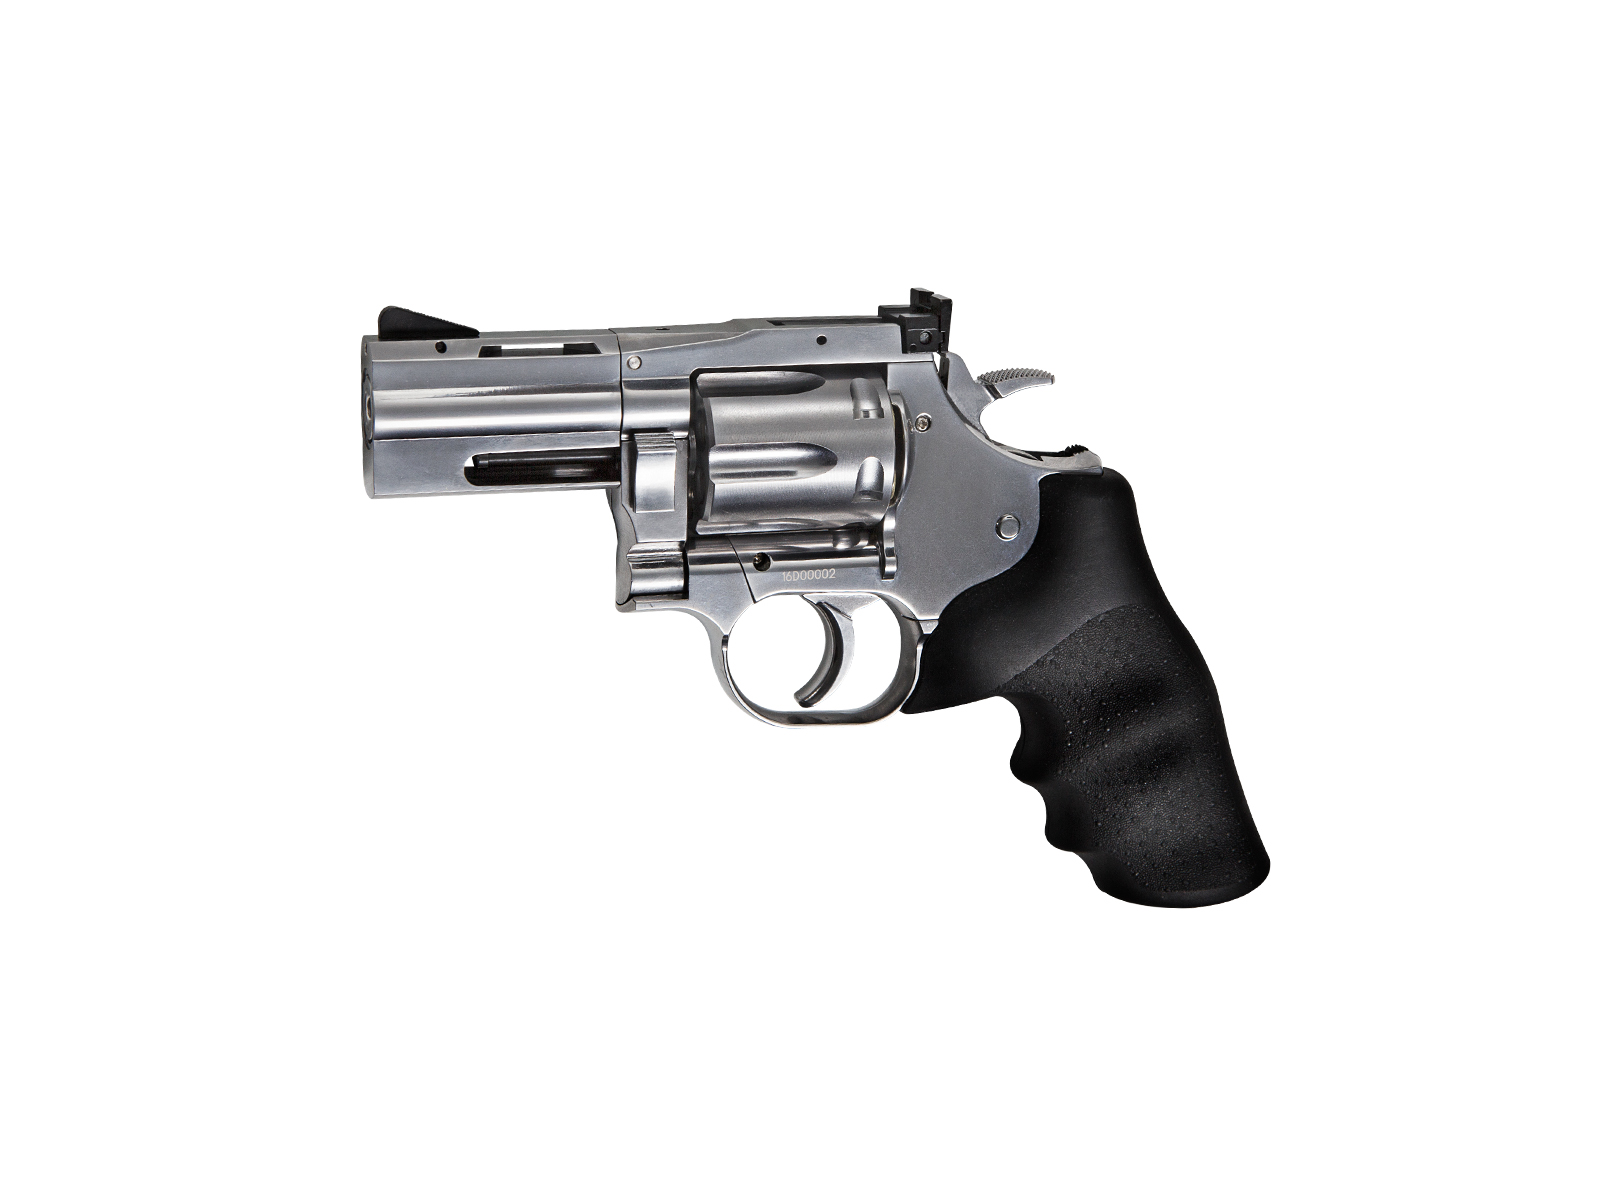 Dan Wesson 715 De 2.5 Inch Silver - 4.5 Mm imagine